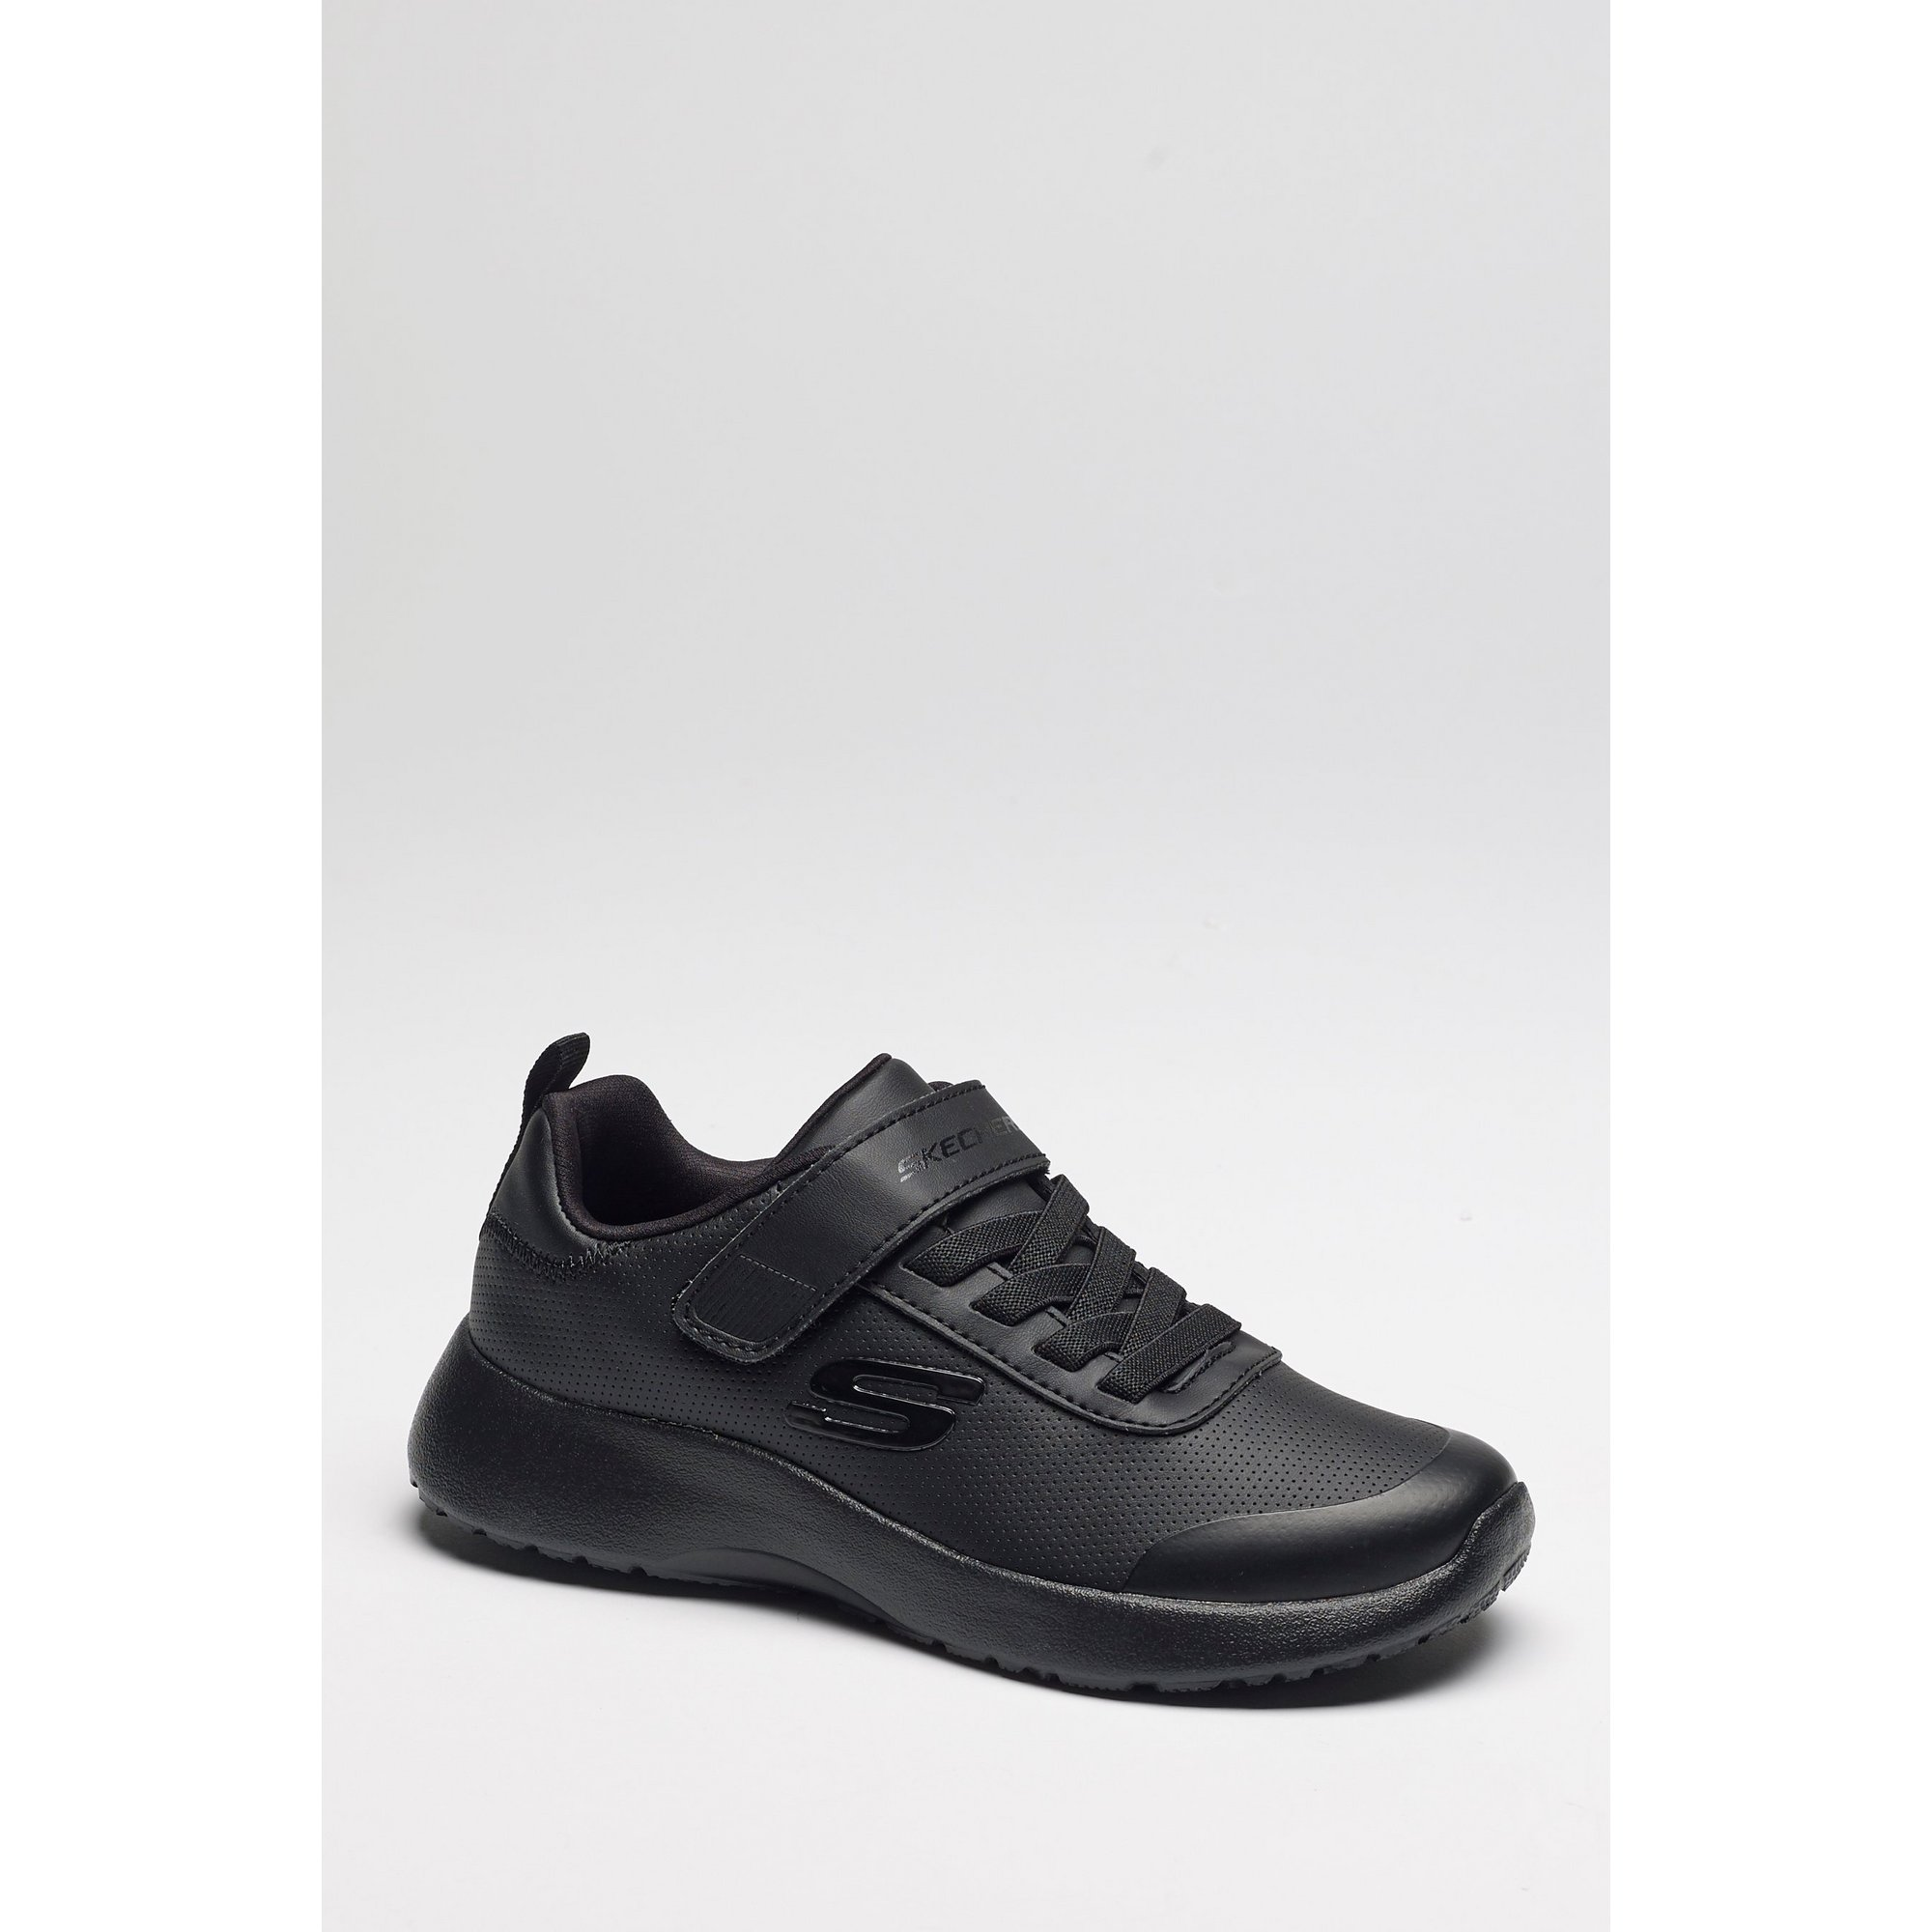 Image of Kids Skechers Casual Gore and Strap Trainers